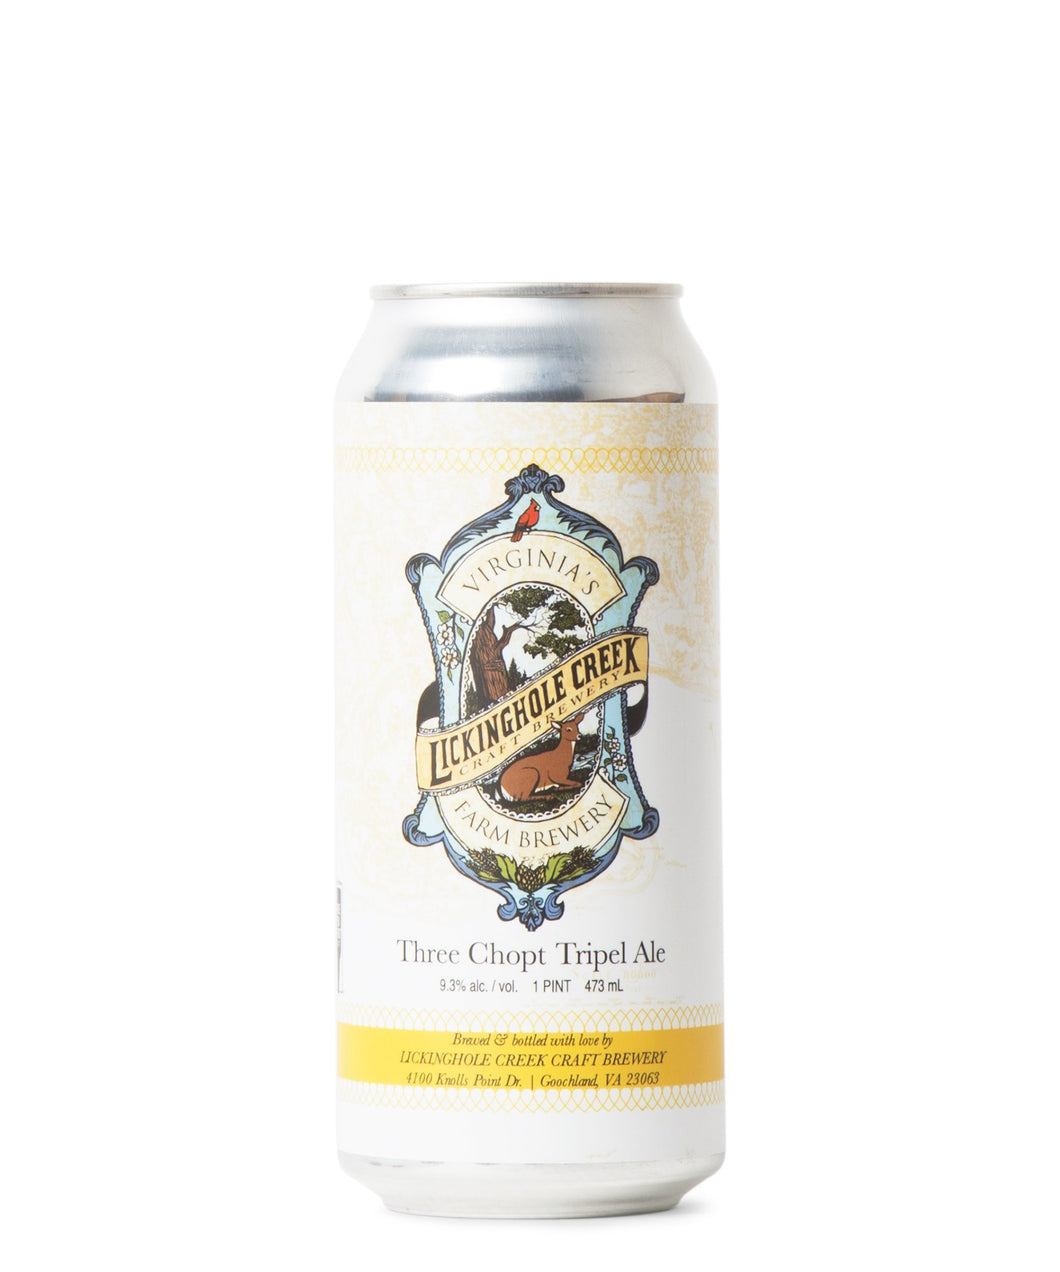 Three Chopt - Lickinghole Creek Craft Brewery Delivered By TapRm